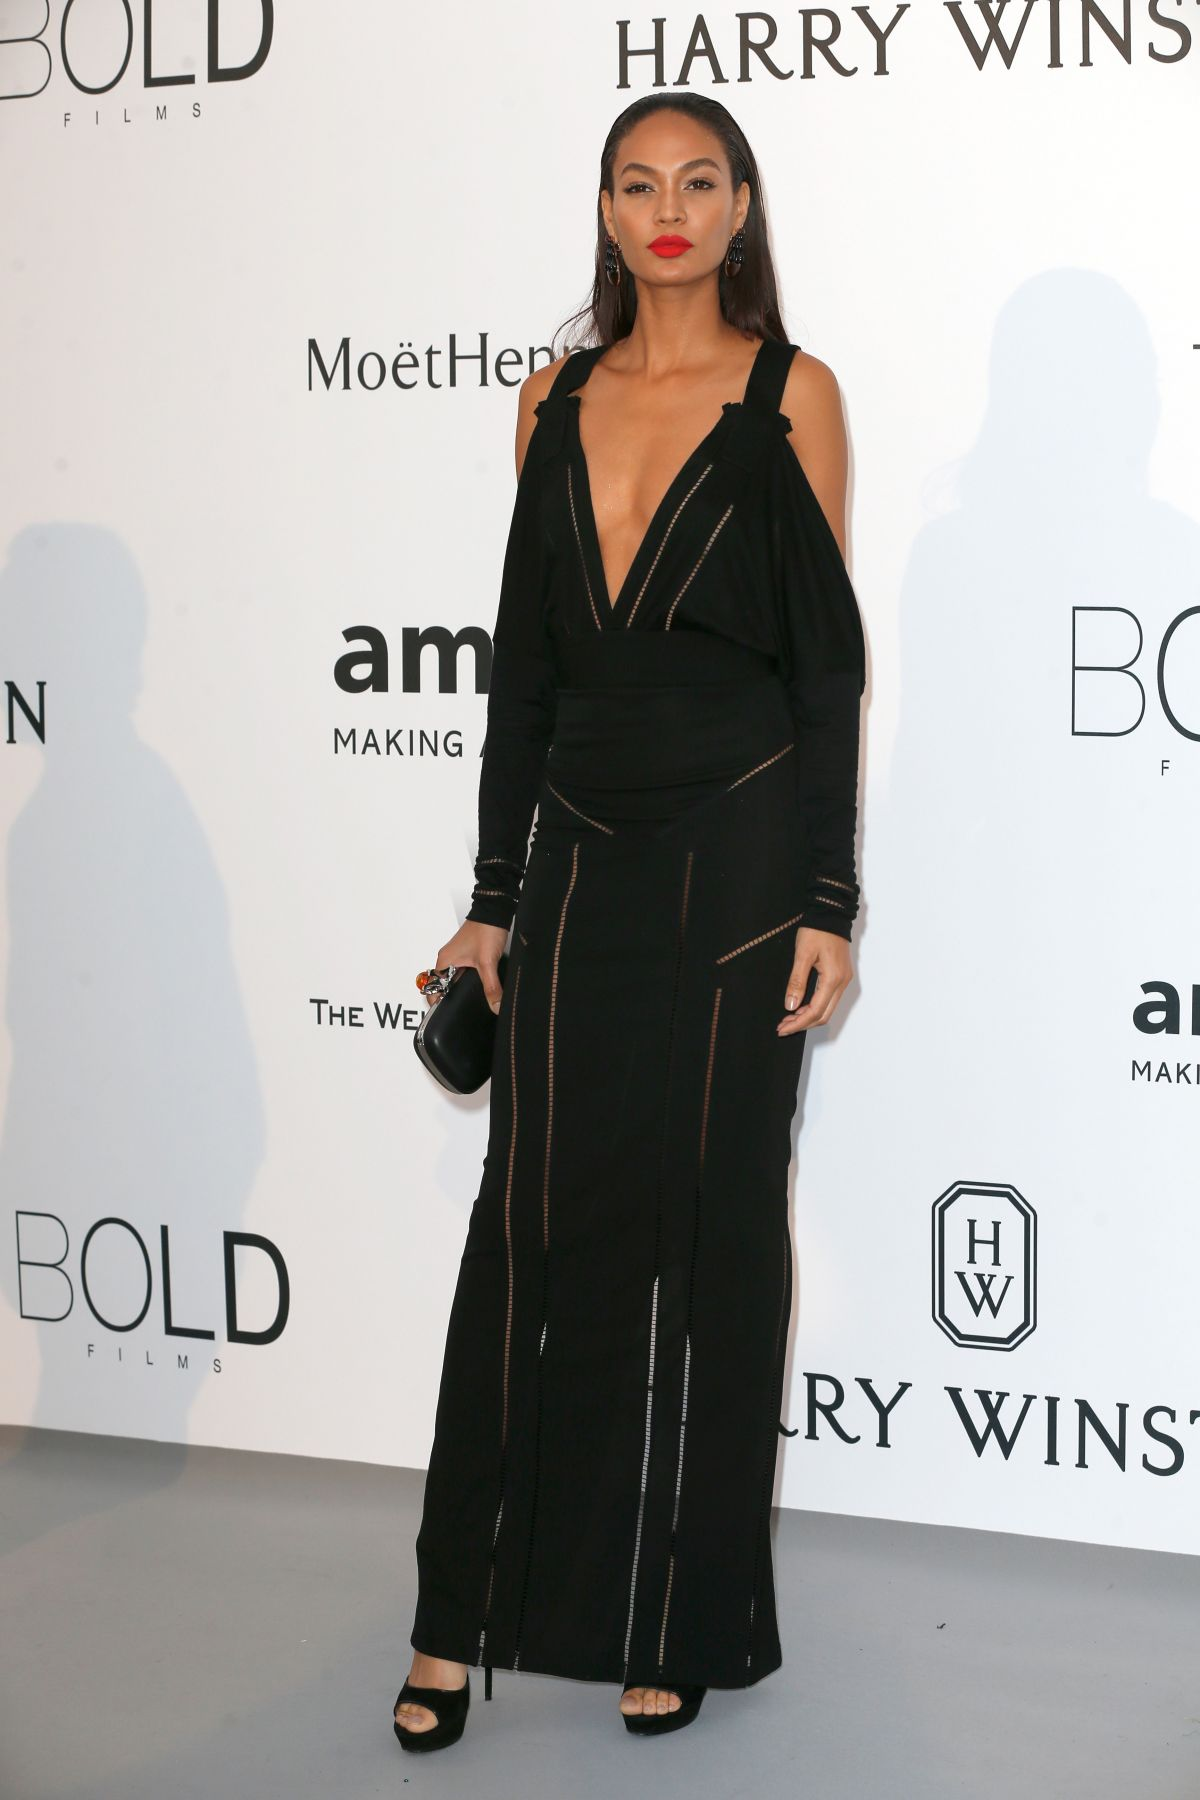 joan-smalls-at-amfar-s-2015-cinema-against-aids-gala-in-cap-d-antibes_2.jpg